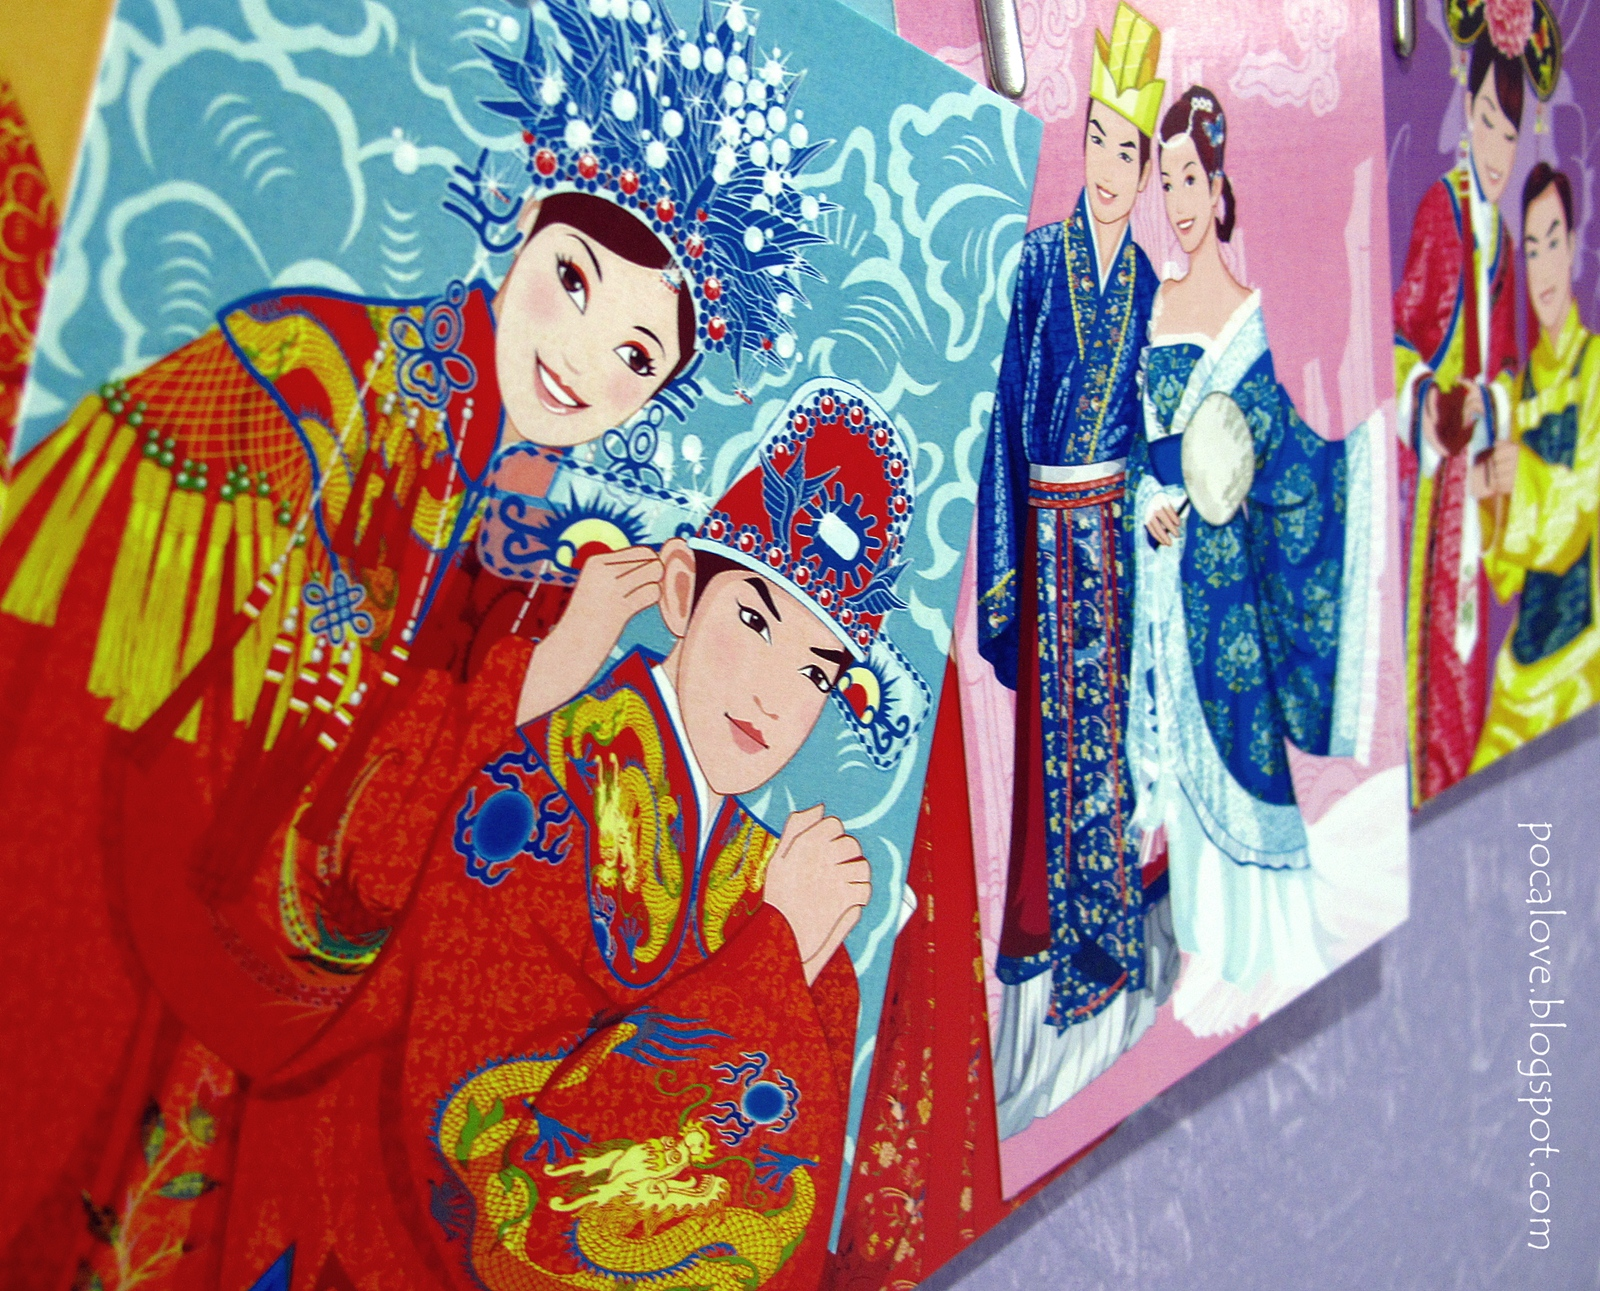 marriage ancient china Many different countries celebrate marriages different ways in the us, the bride wears a white gown, and the groom wears a tuxedo in countries like china, the bride wears a brightly colored dress from ancient times marriage has been regulated by law and religious practice china has a very.